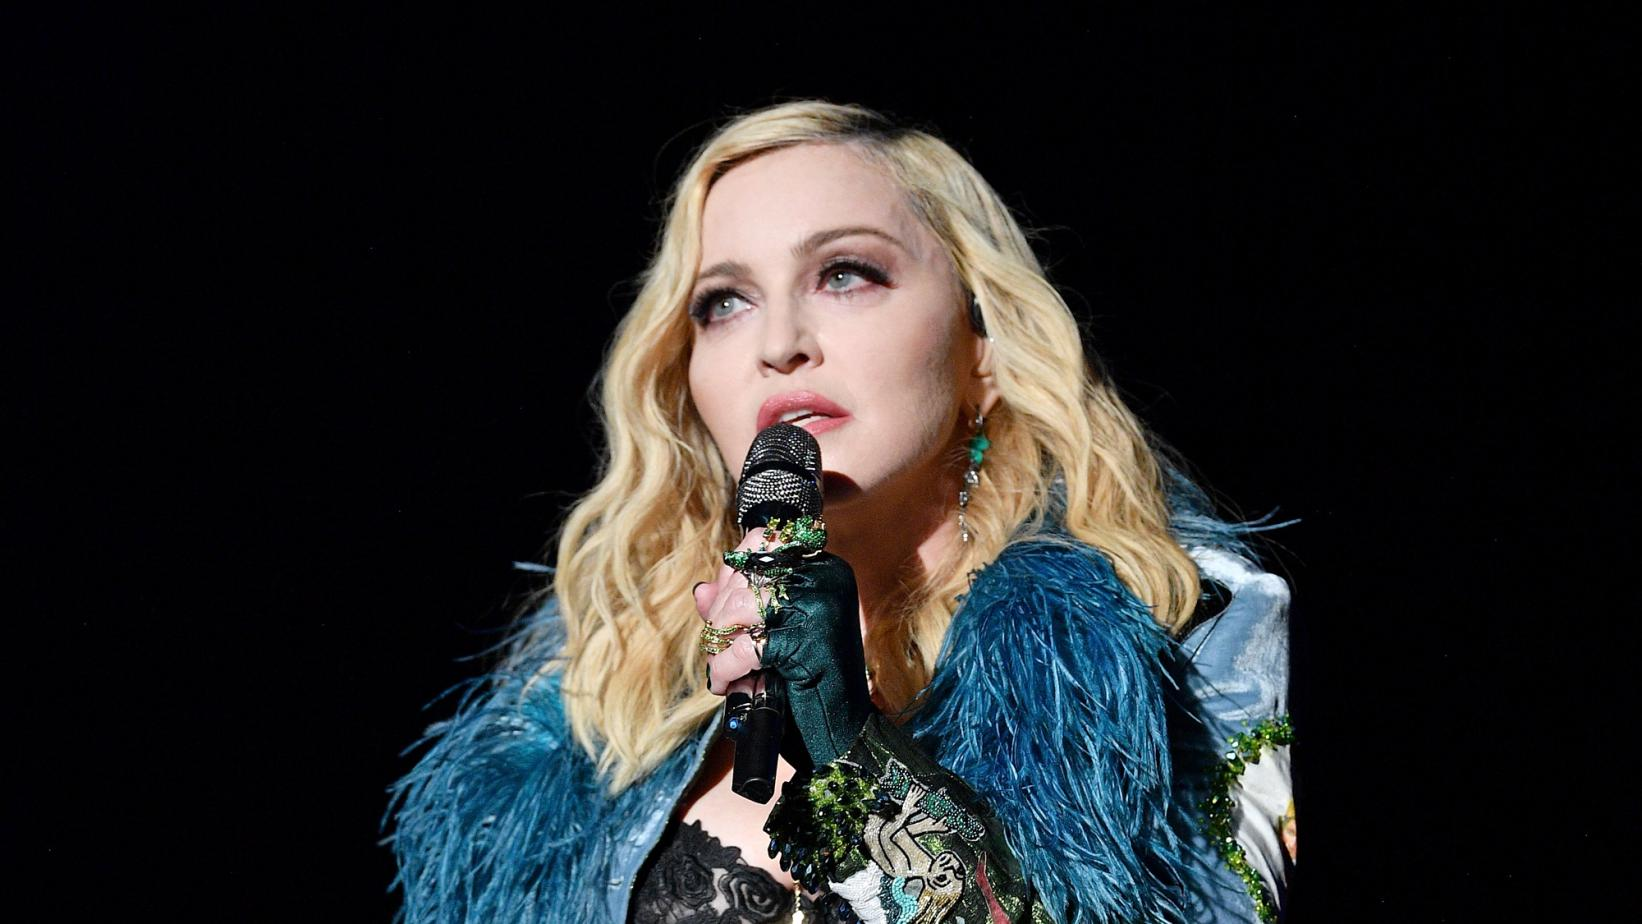 """madonna-is-dropping-a-whole-bag-of-5-million-on-her-performance-at-the-billboard-awards-some-people-say-thats-a-waste-of-money"""